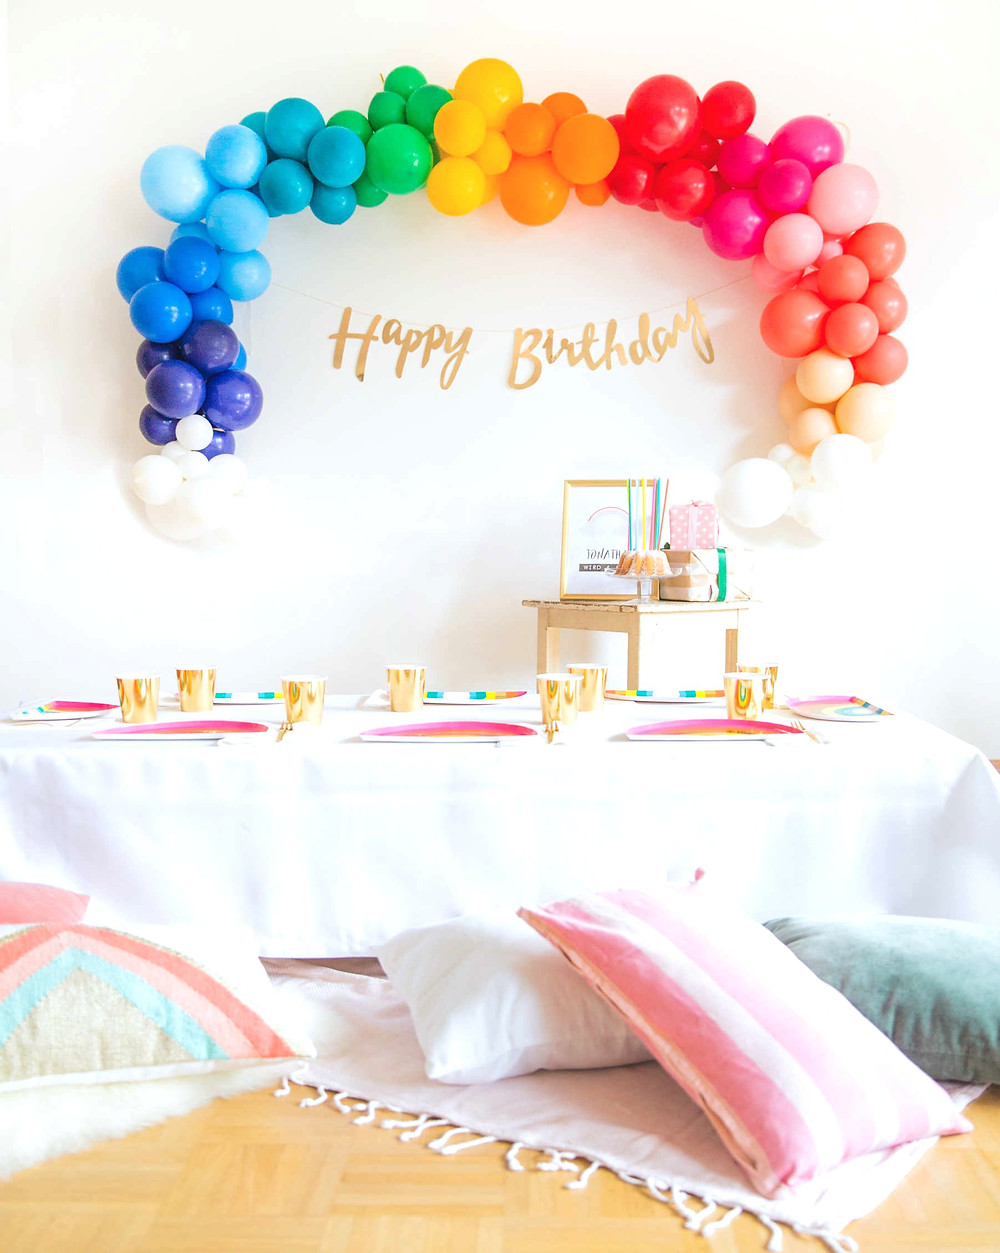 Kindergeburtstag, Kinderparty, Regenbogenparty, Rainbow, Partydeko, Party aus der Box, Party in a box, Kinderparty, Geburtstagsfeier